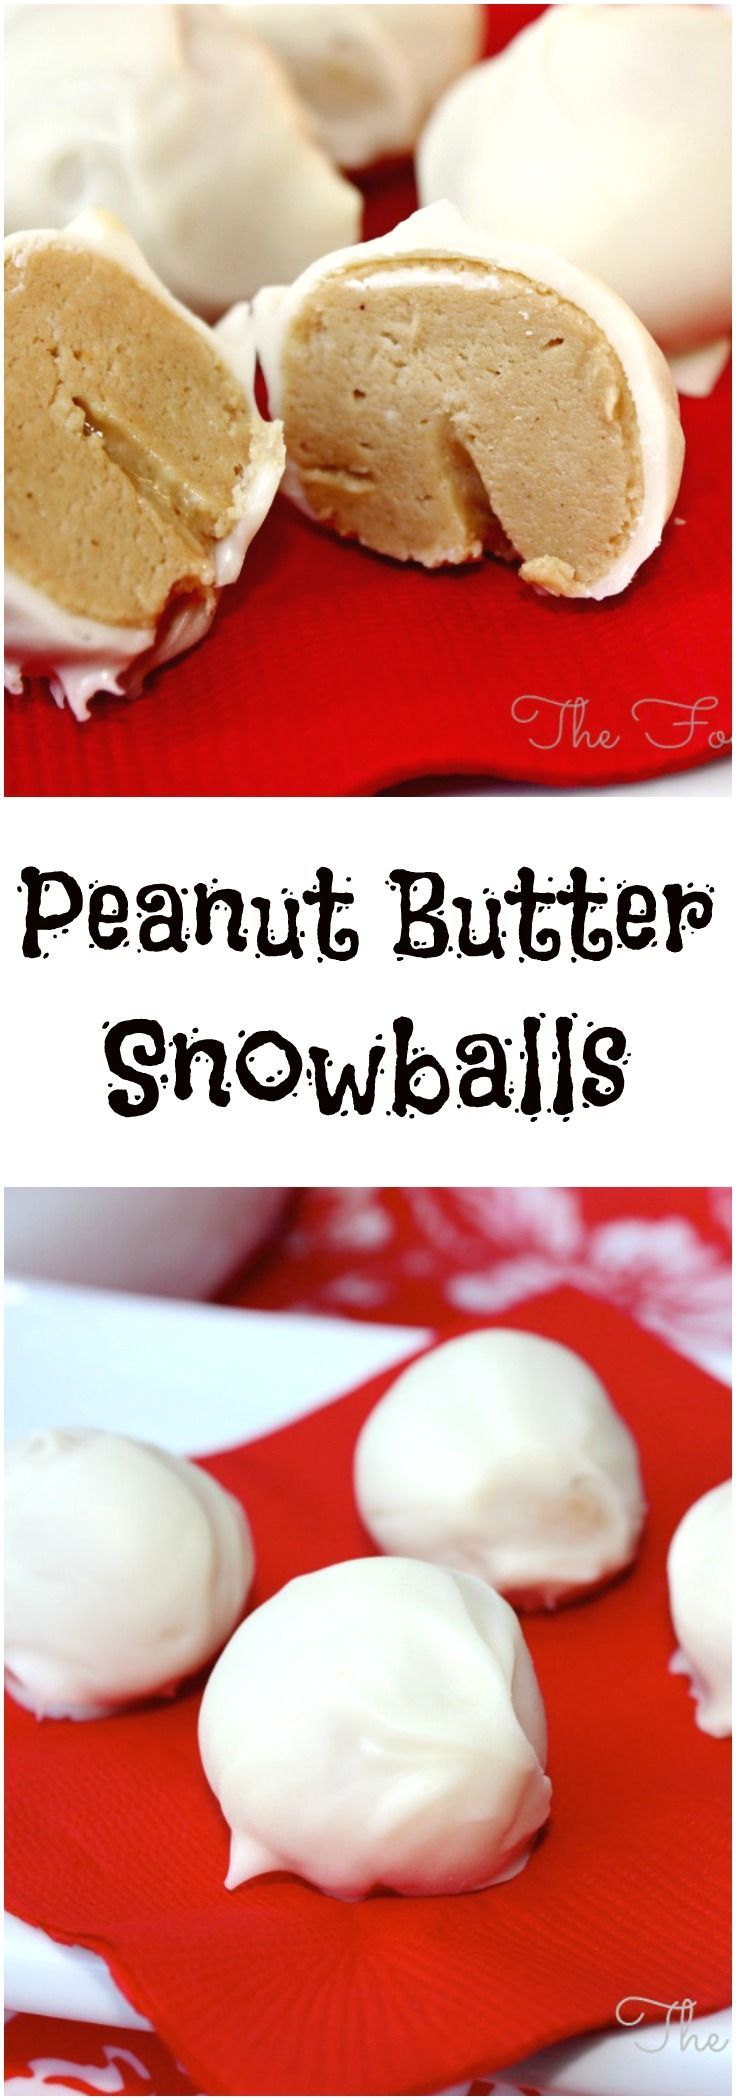 Peanut Butter Snowballs, a creamy treat dipped in white chocolate! No-baking required and just four ingredients are needed to make these.  An easy treat to make with kids! #PeanutButter #Chocolate #Holiday #DessertRecipes